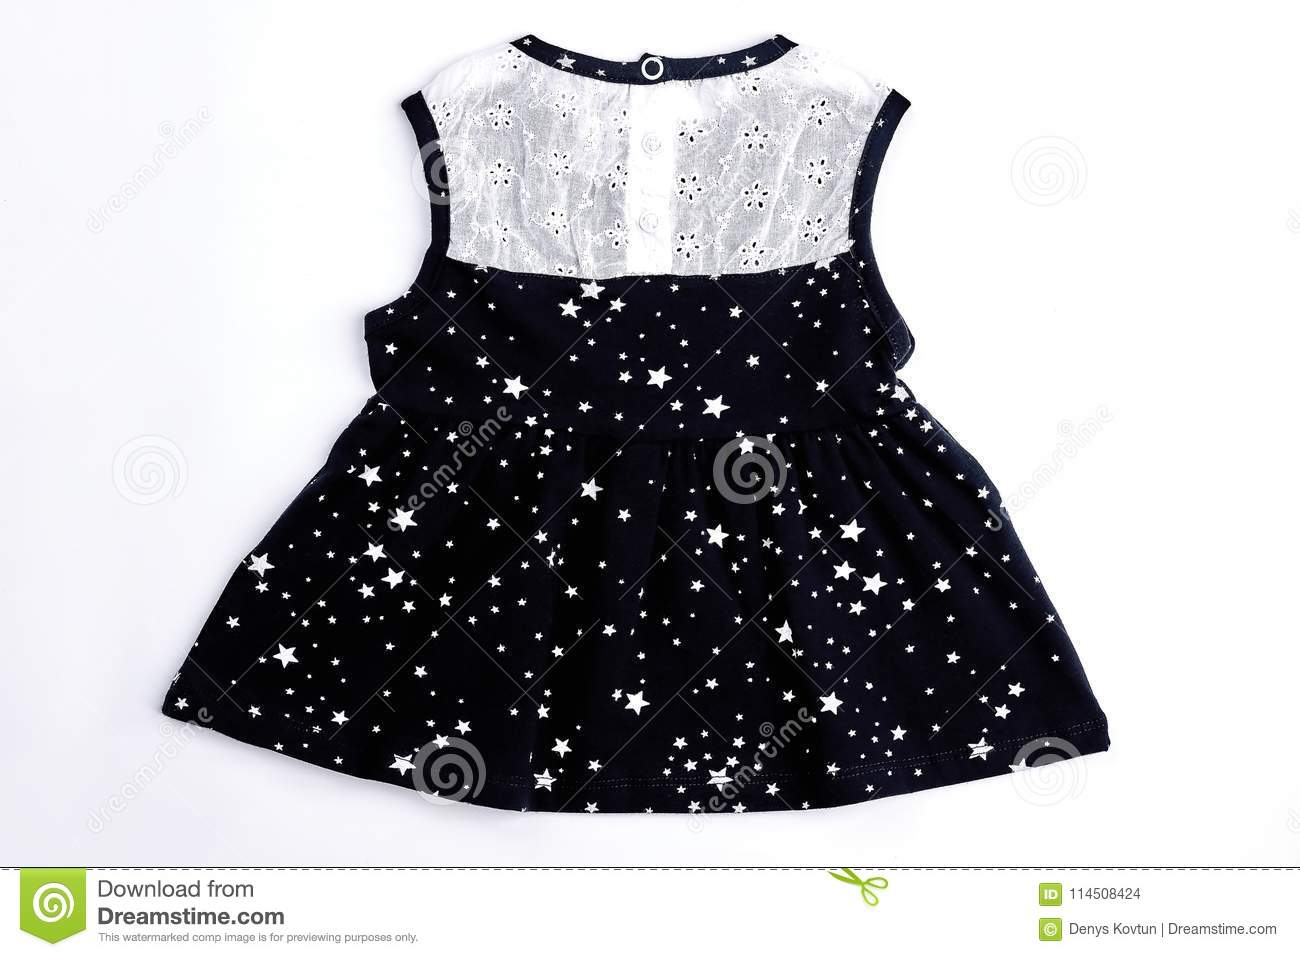 8d4b0c2dc Baby-girl White And Black Dress. Stock Photo - Image of apparel ...